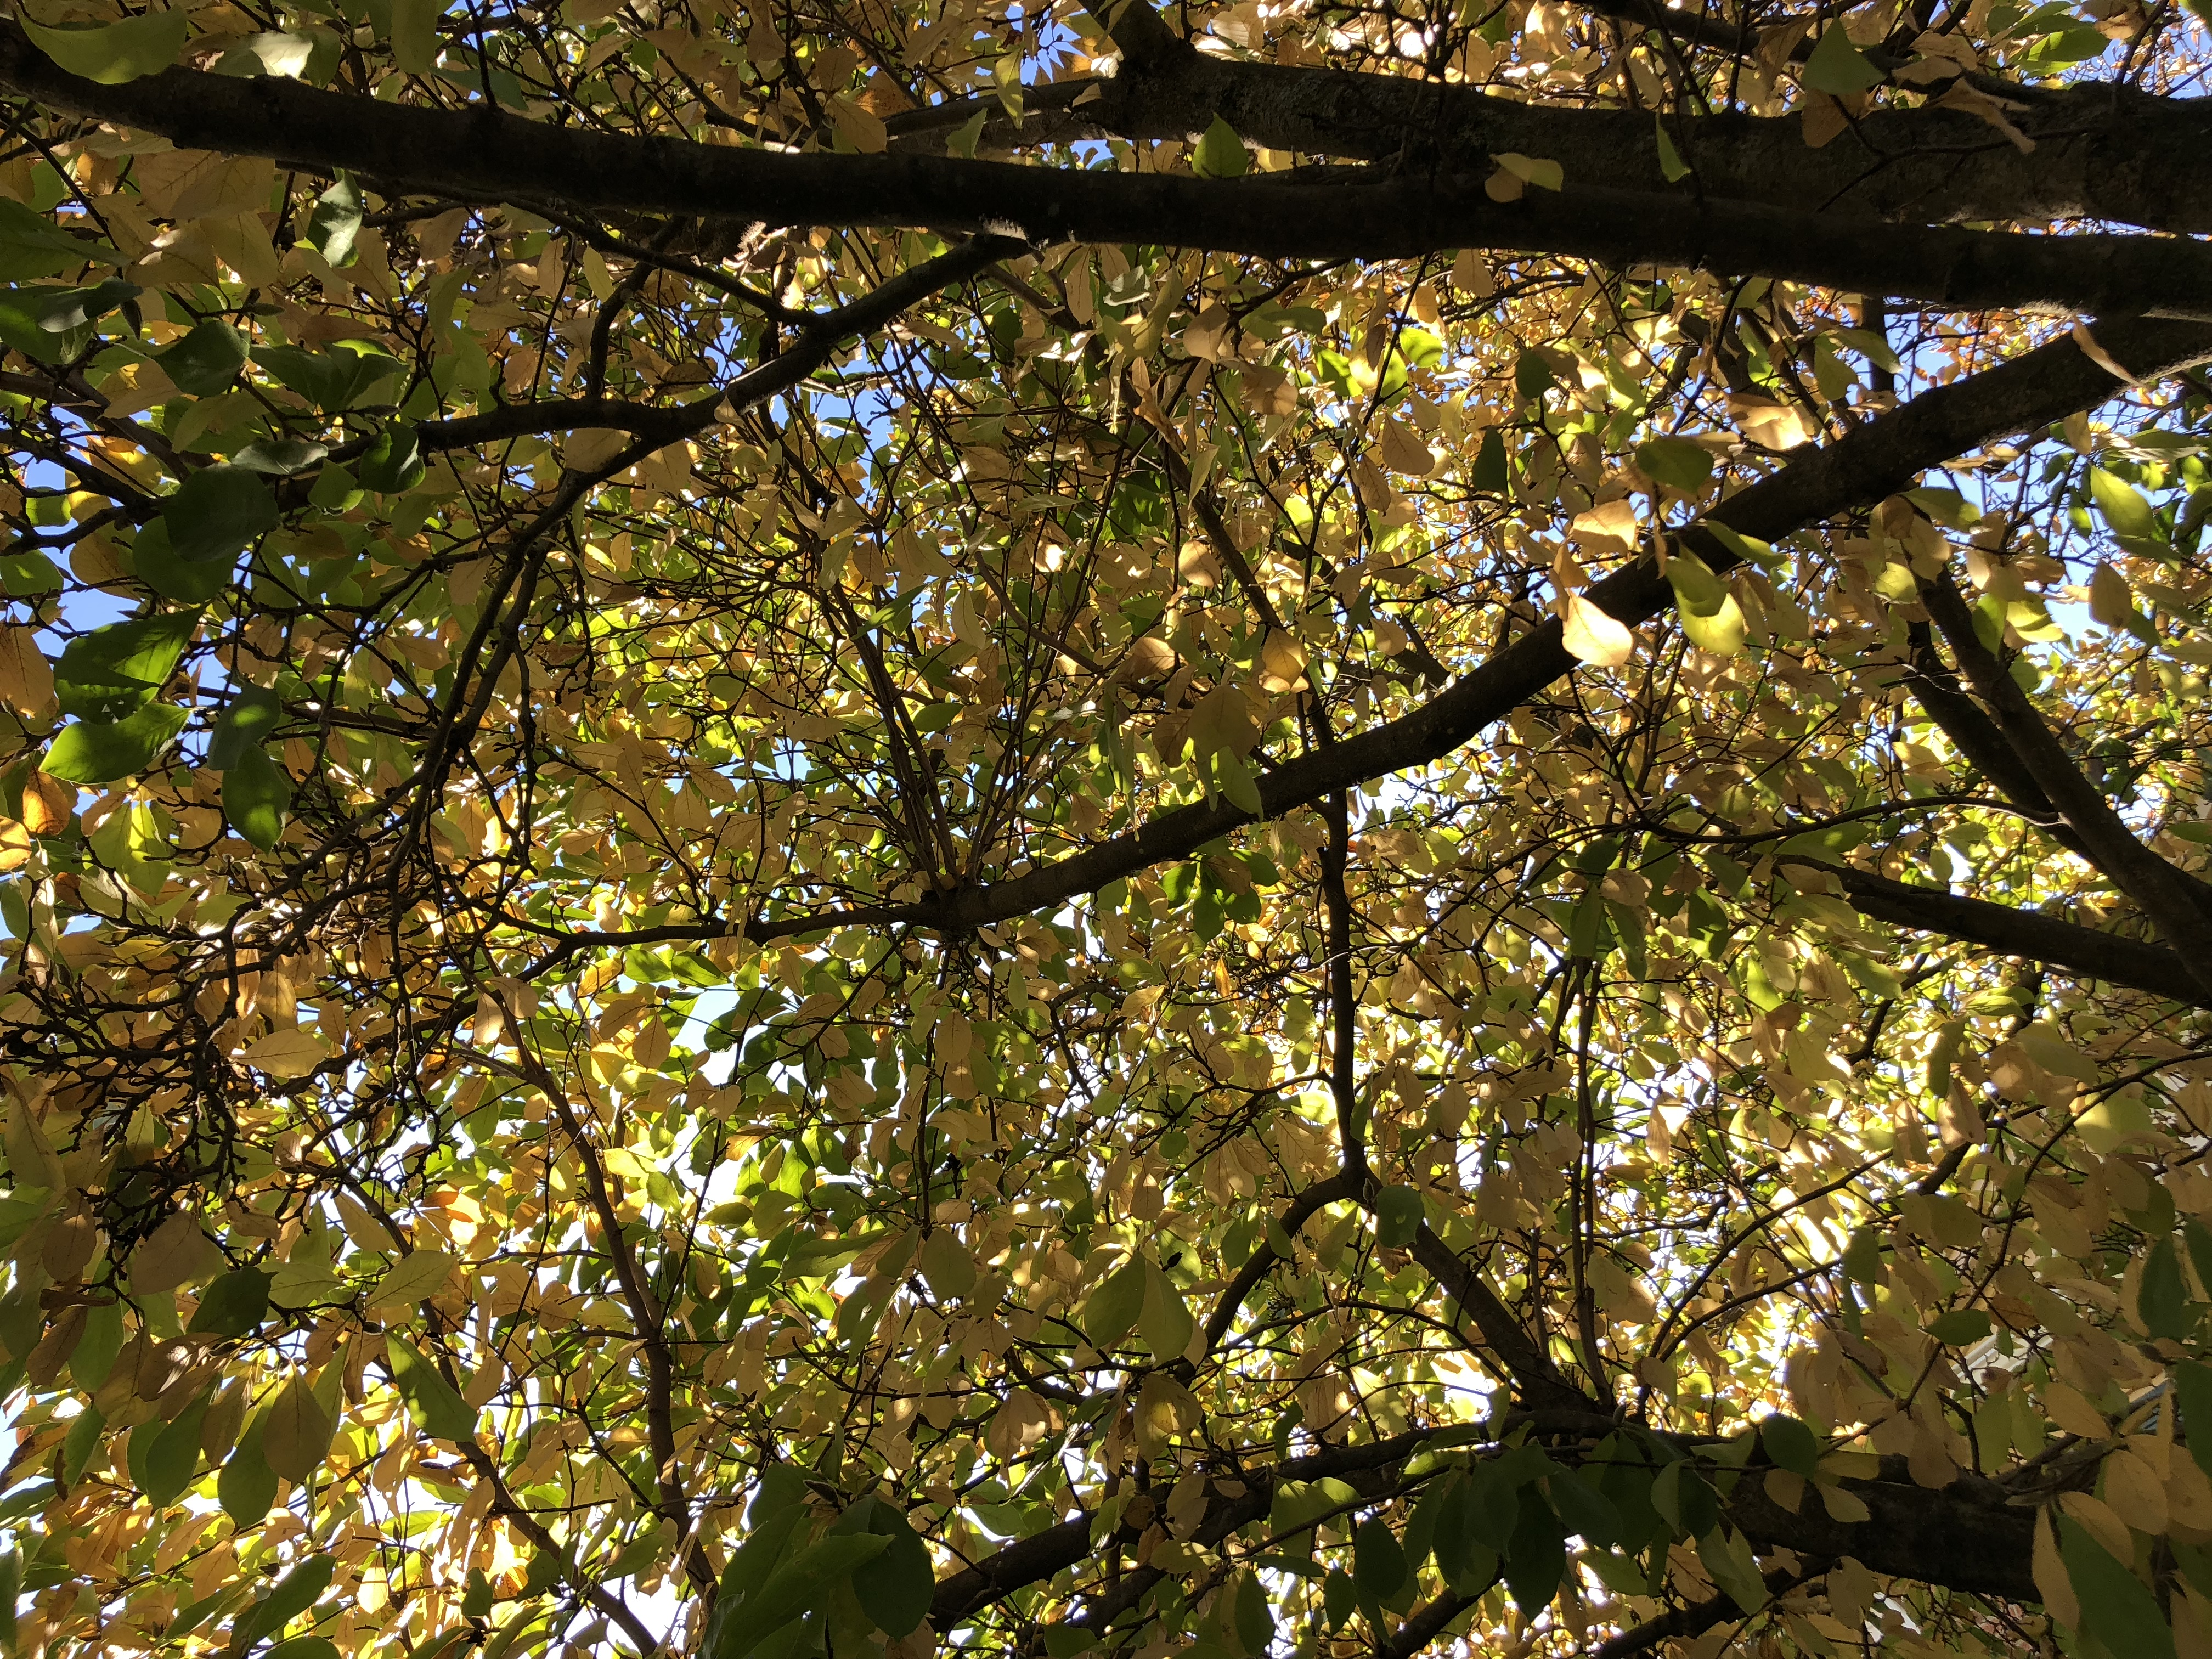 File 2019 11 04 13 58 11 View Up Into The Canopy Of A Saucer Magnolia In Late Autumn Along Higgs Court In The Franklin Farm Section Of Oak Hill Fairfax County Virginia Jpg Wikimedia Commons